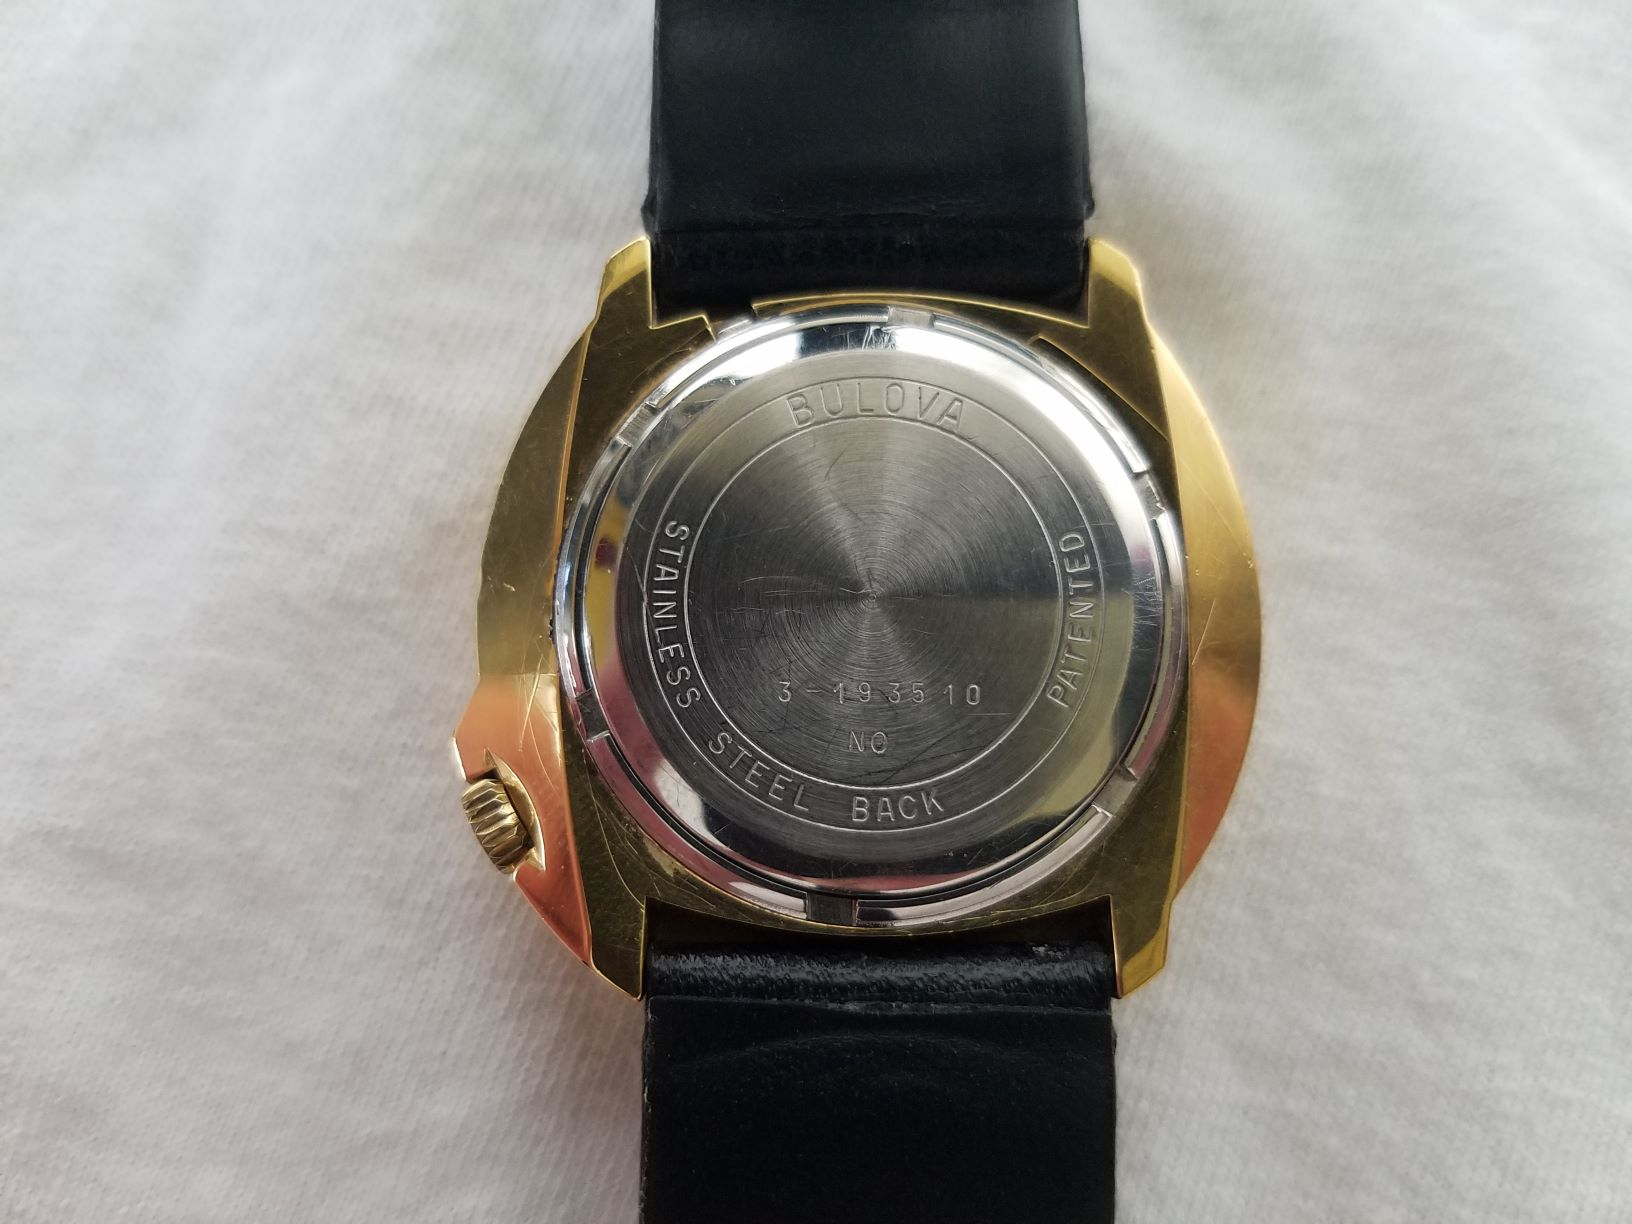 [field_year-1970] Bulova Watch Caseback